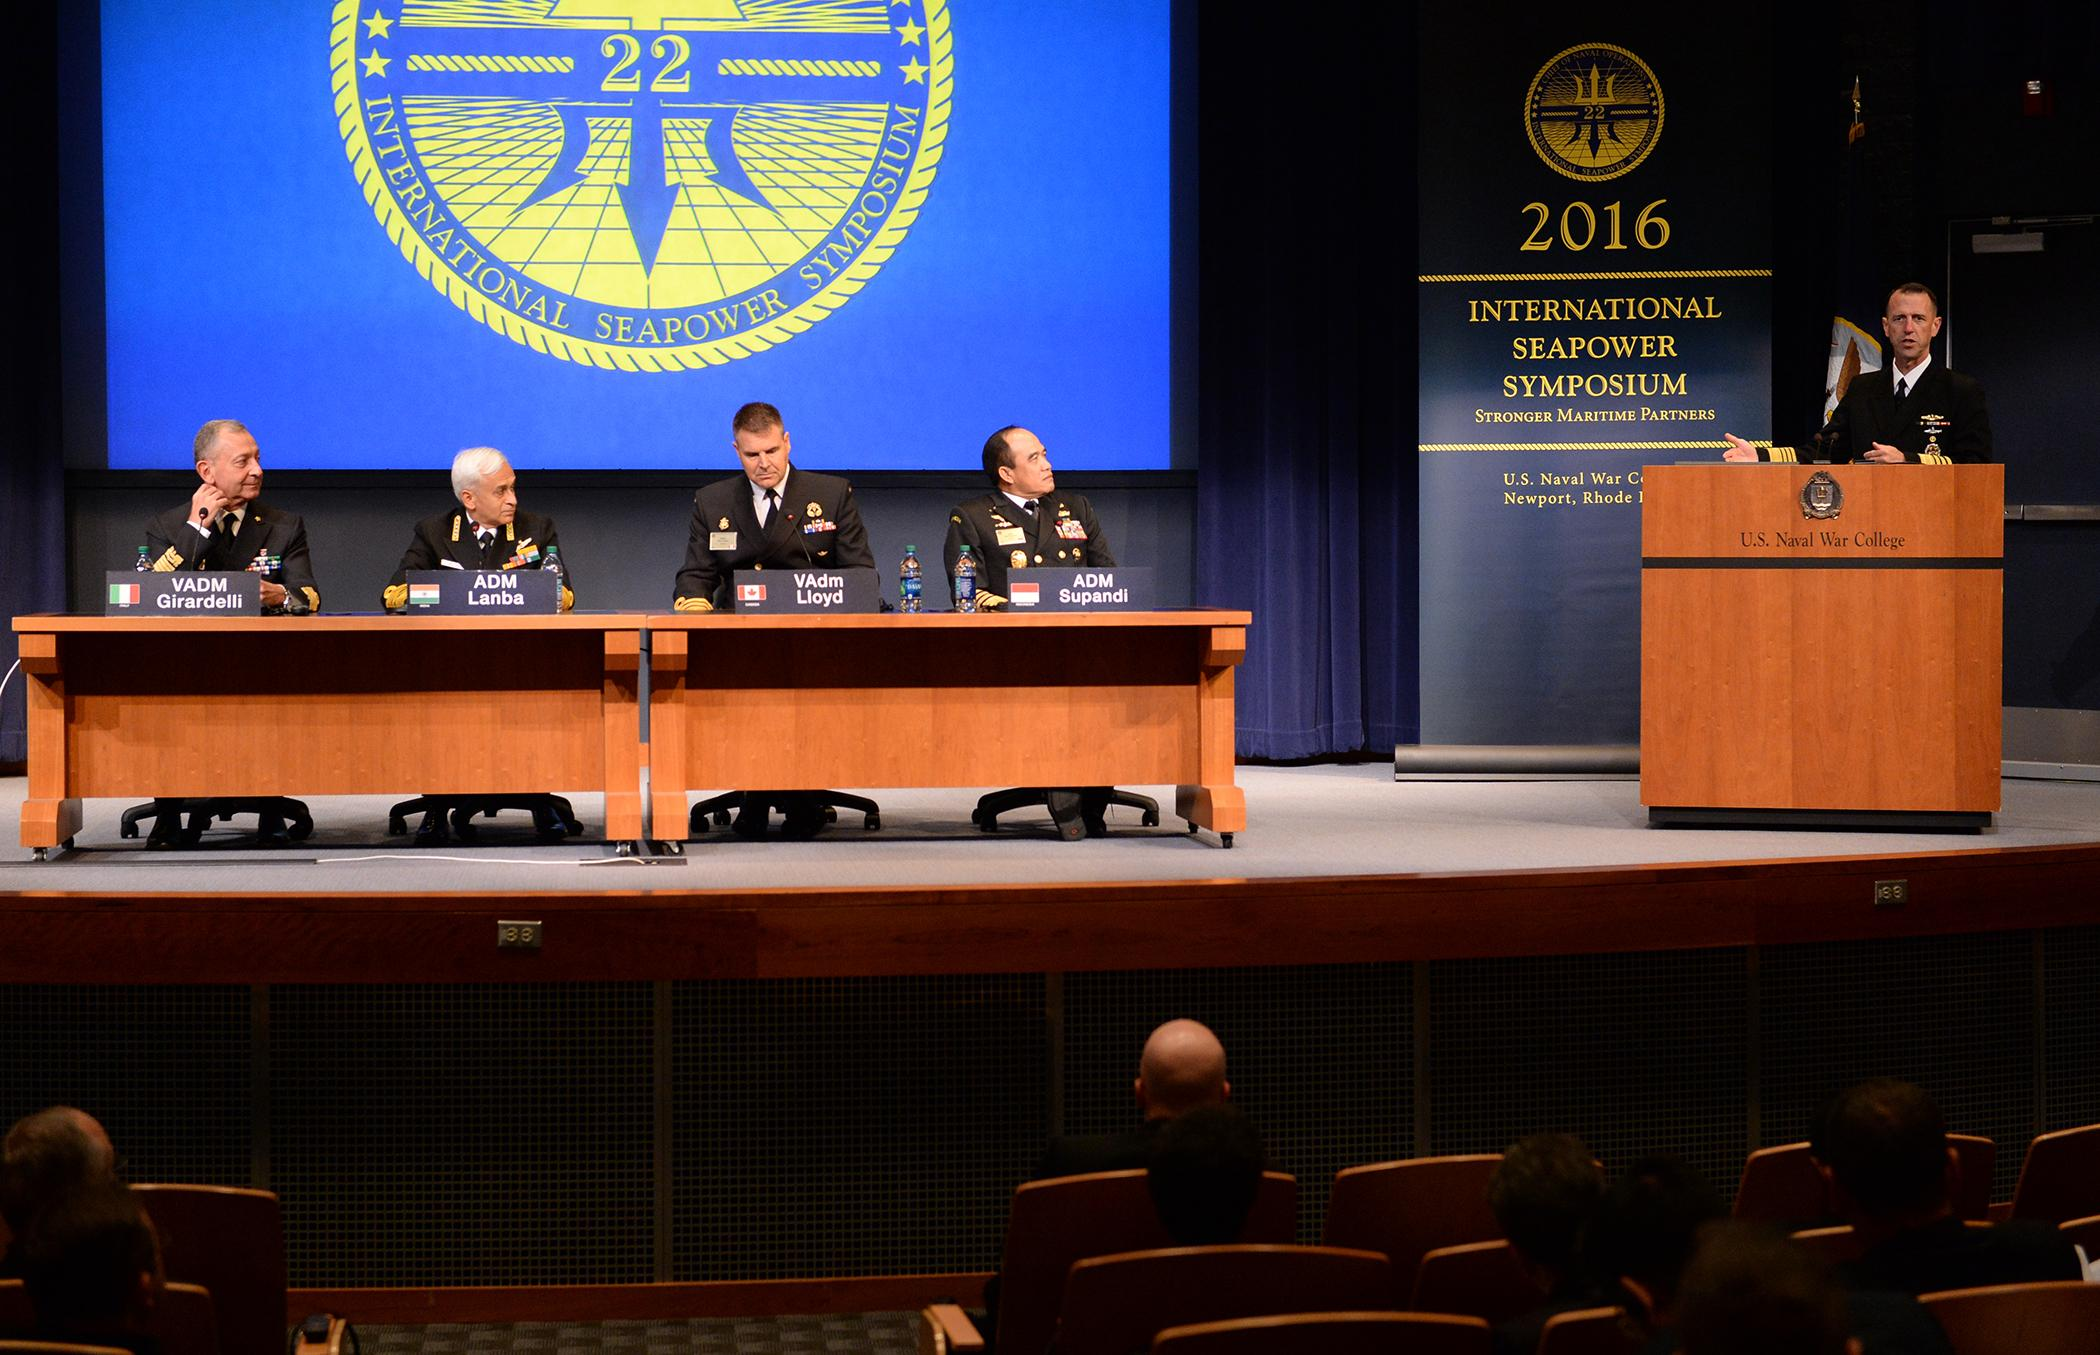 International Seapower Symposium